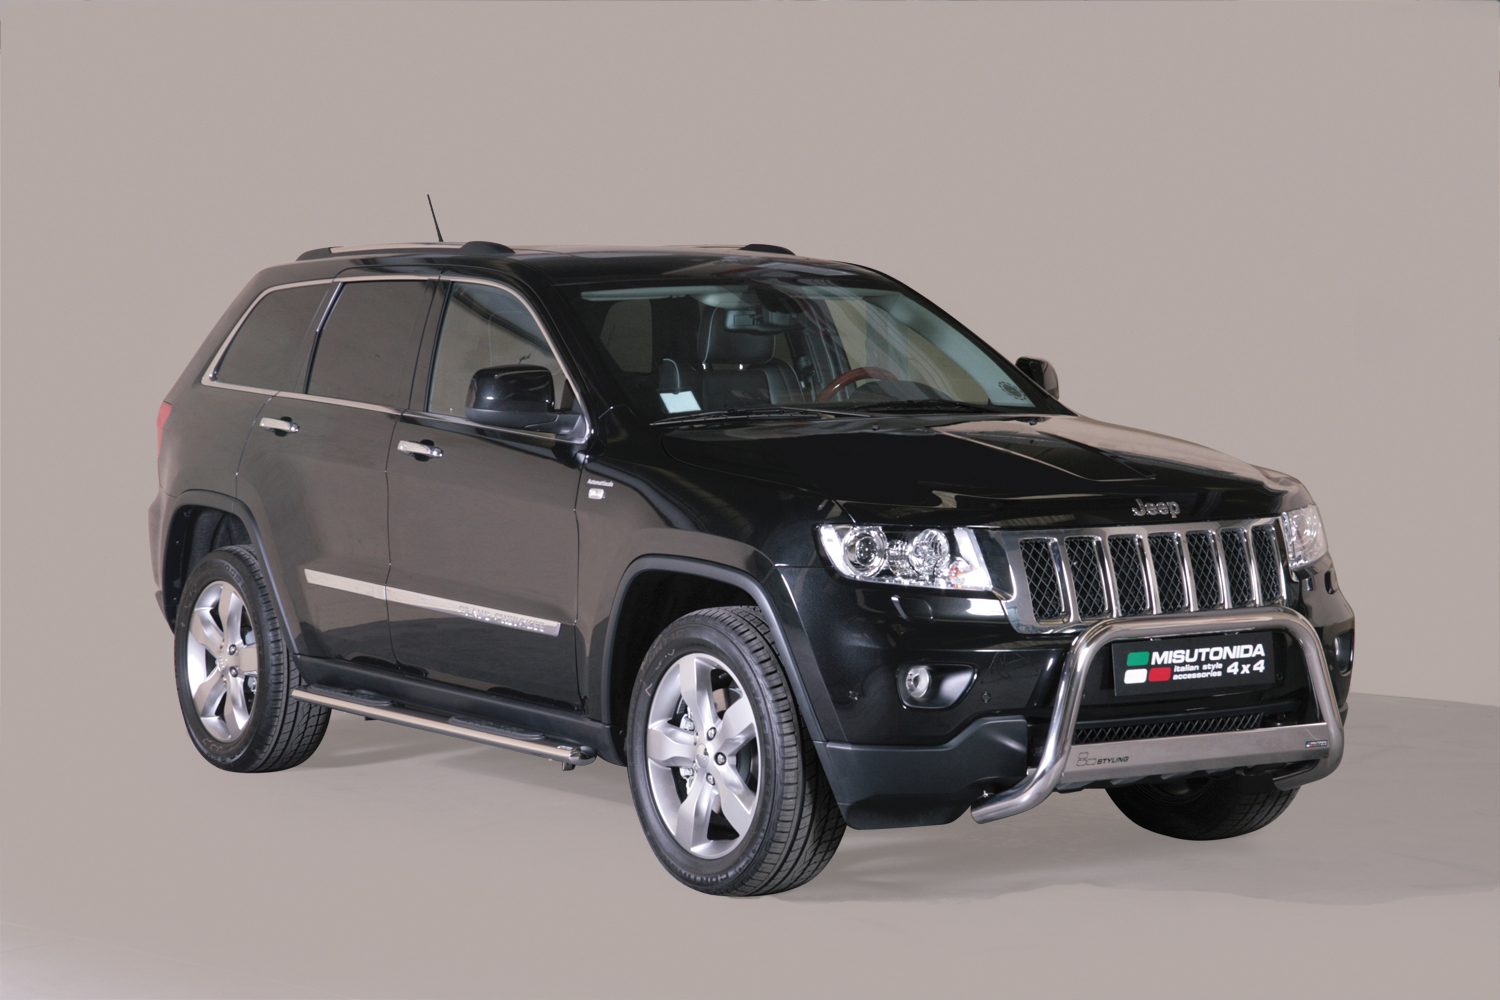 tubes marche pieds inox 76 jeep grand cherokee 2011. Black Bedroom Furniture Sets. Home Design Ideas